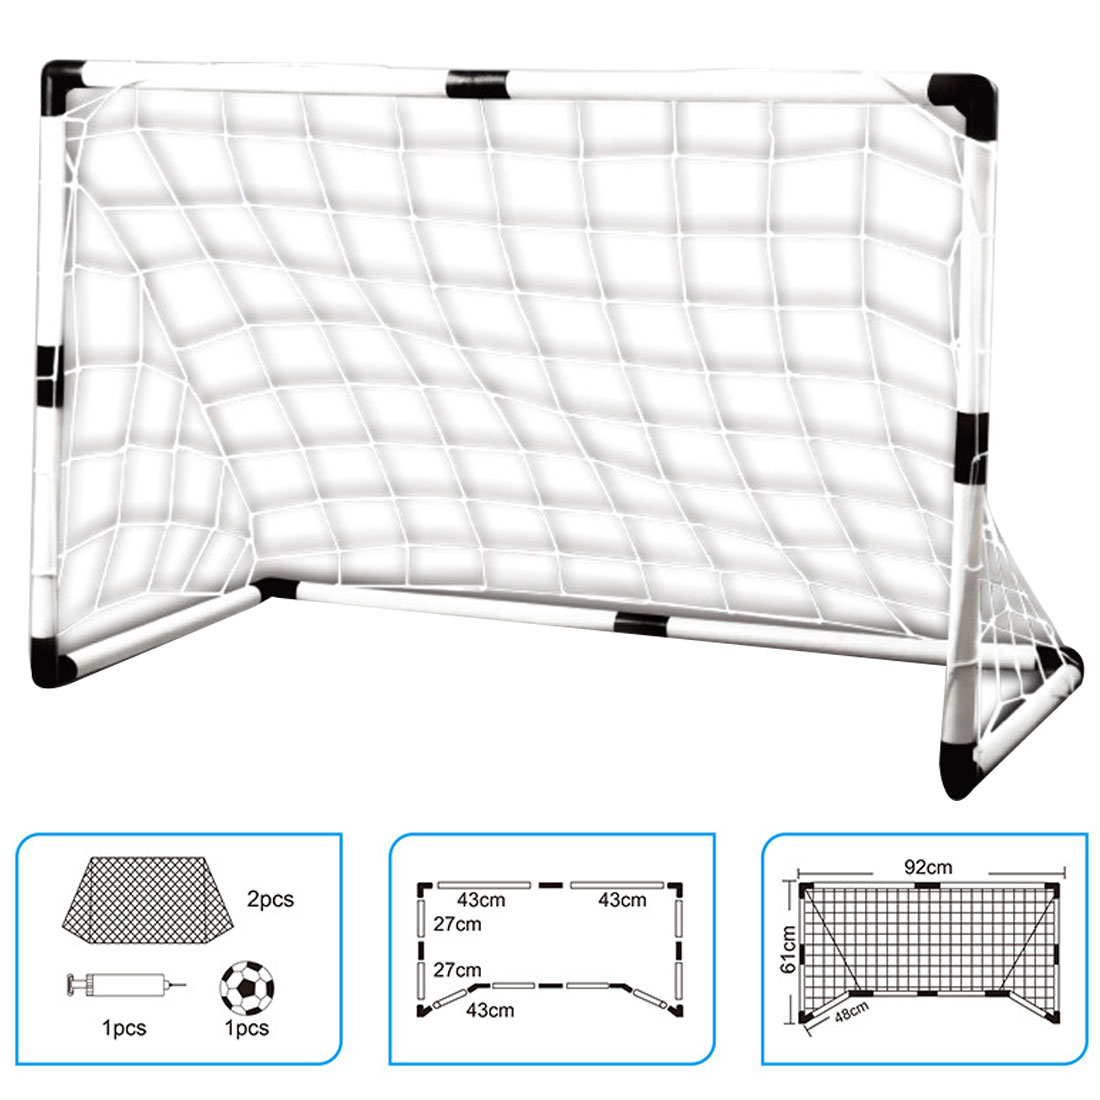 Hot 2 Sets Detachable DIY Children Sports Soccer Goals Practice Scrimmage Game Football Gate DIY White